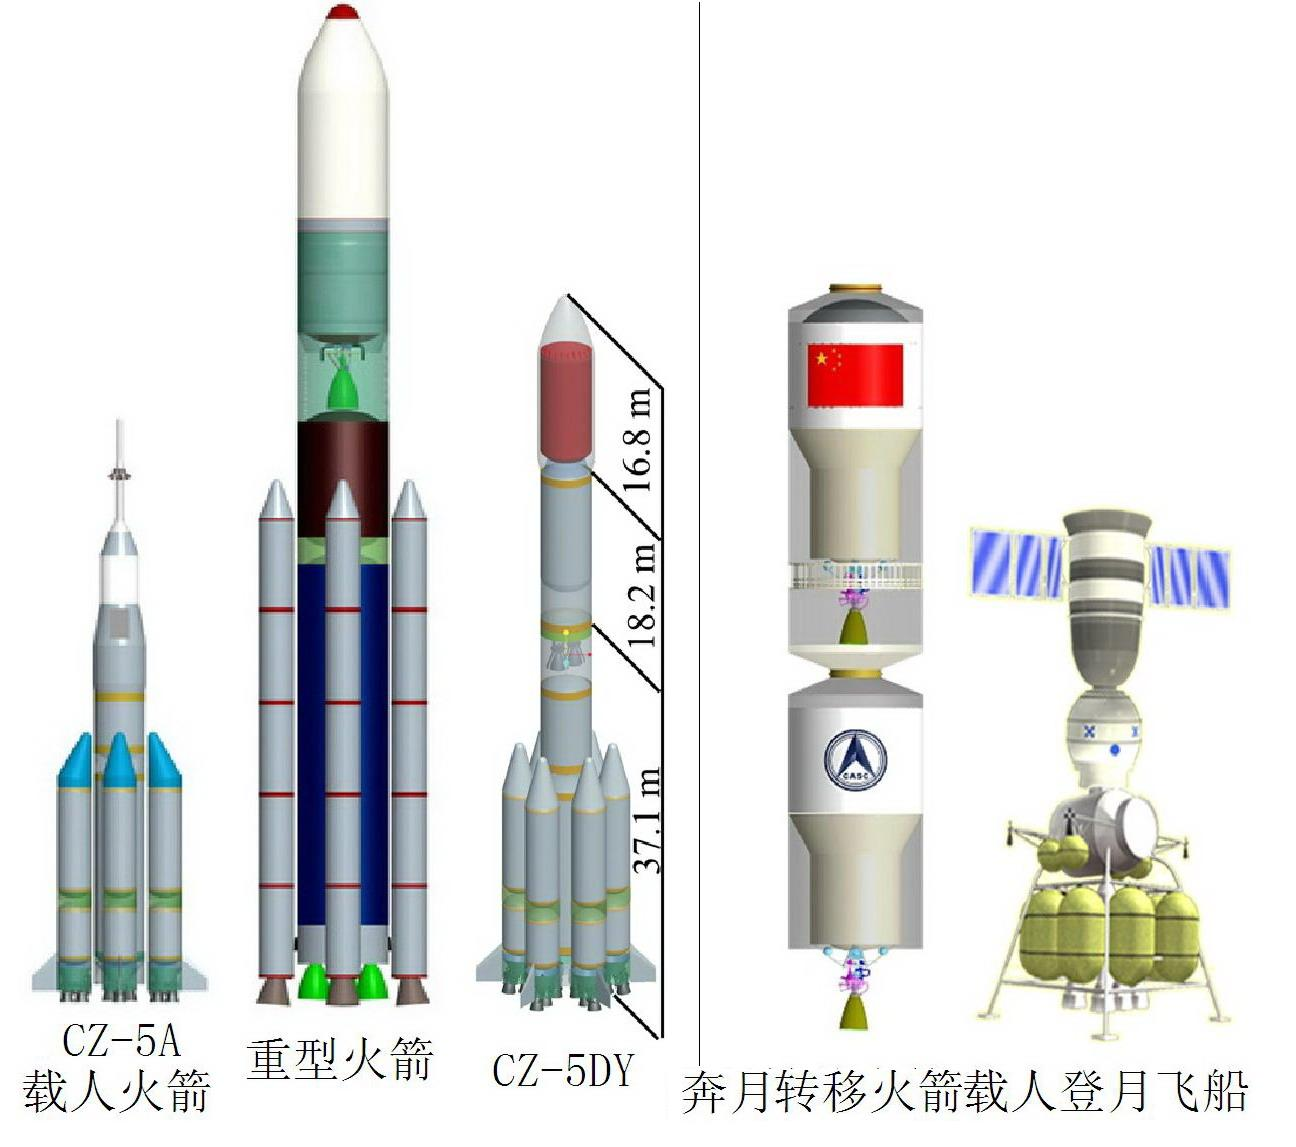 chinese space program history - photo #21